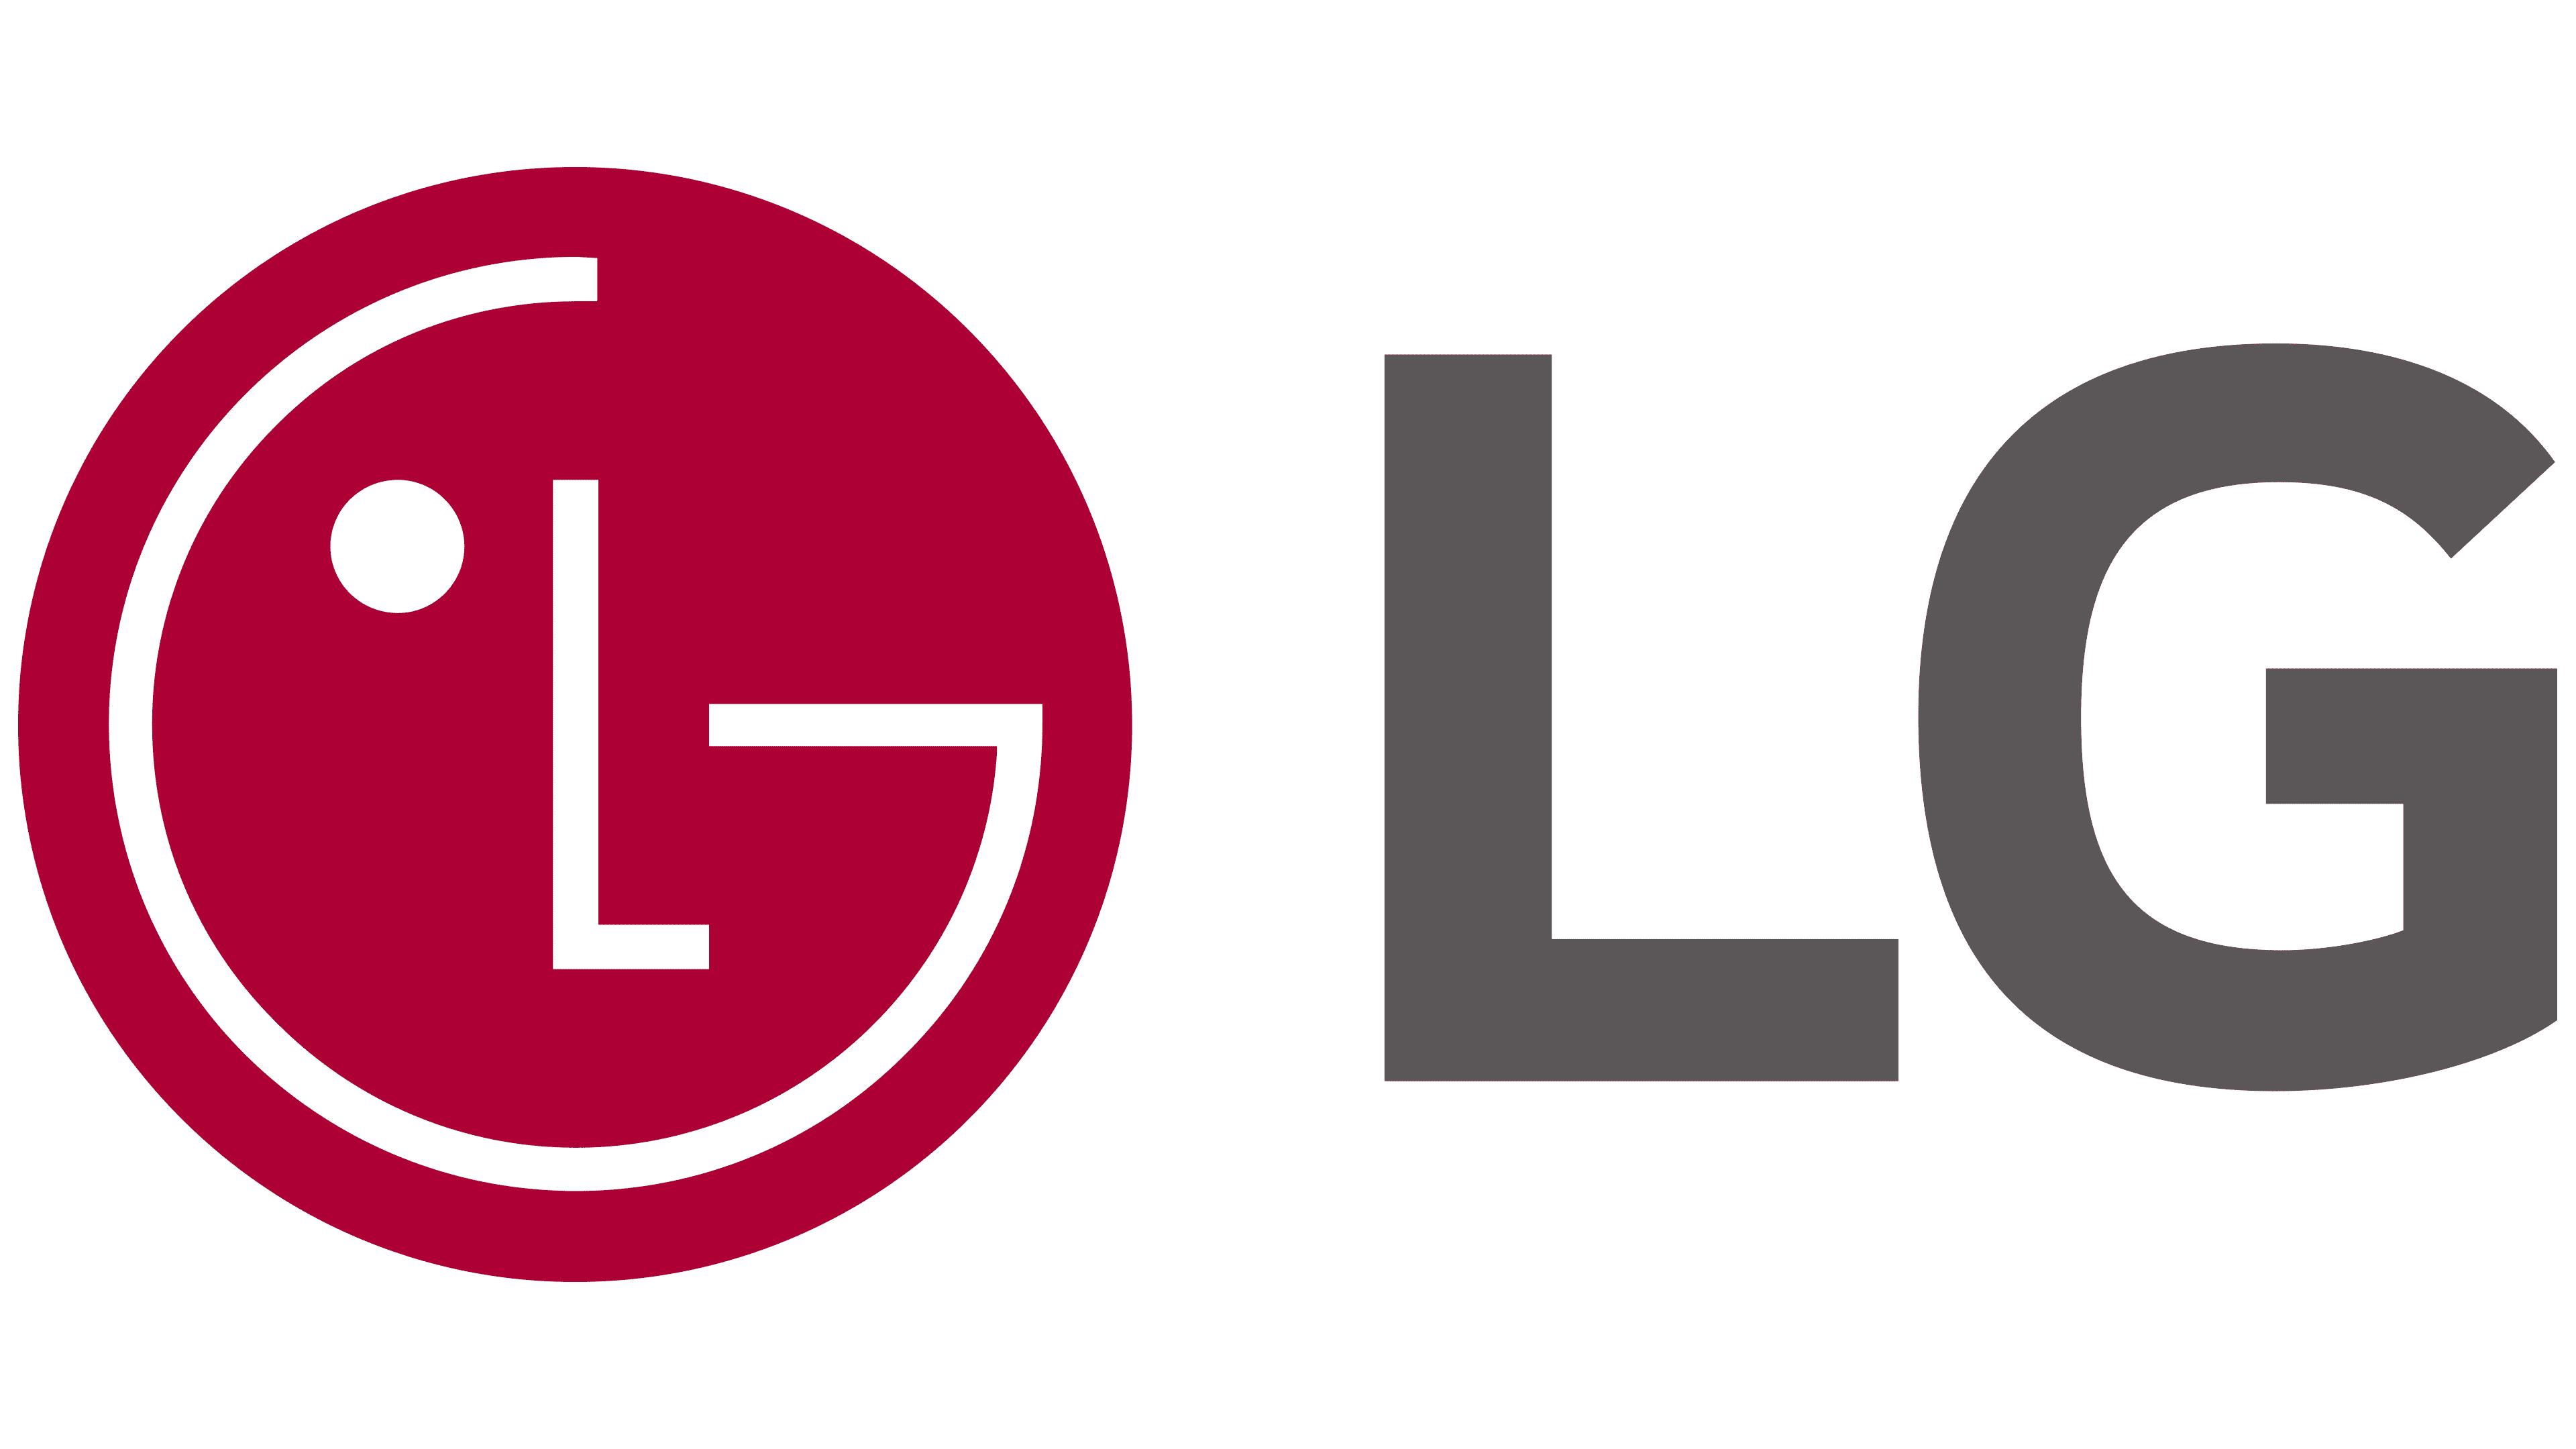 LG Logo | The most famous brands and company logos in the world